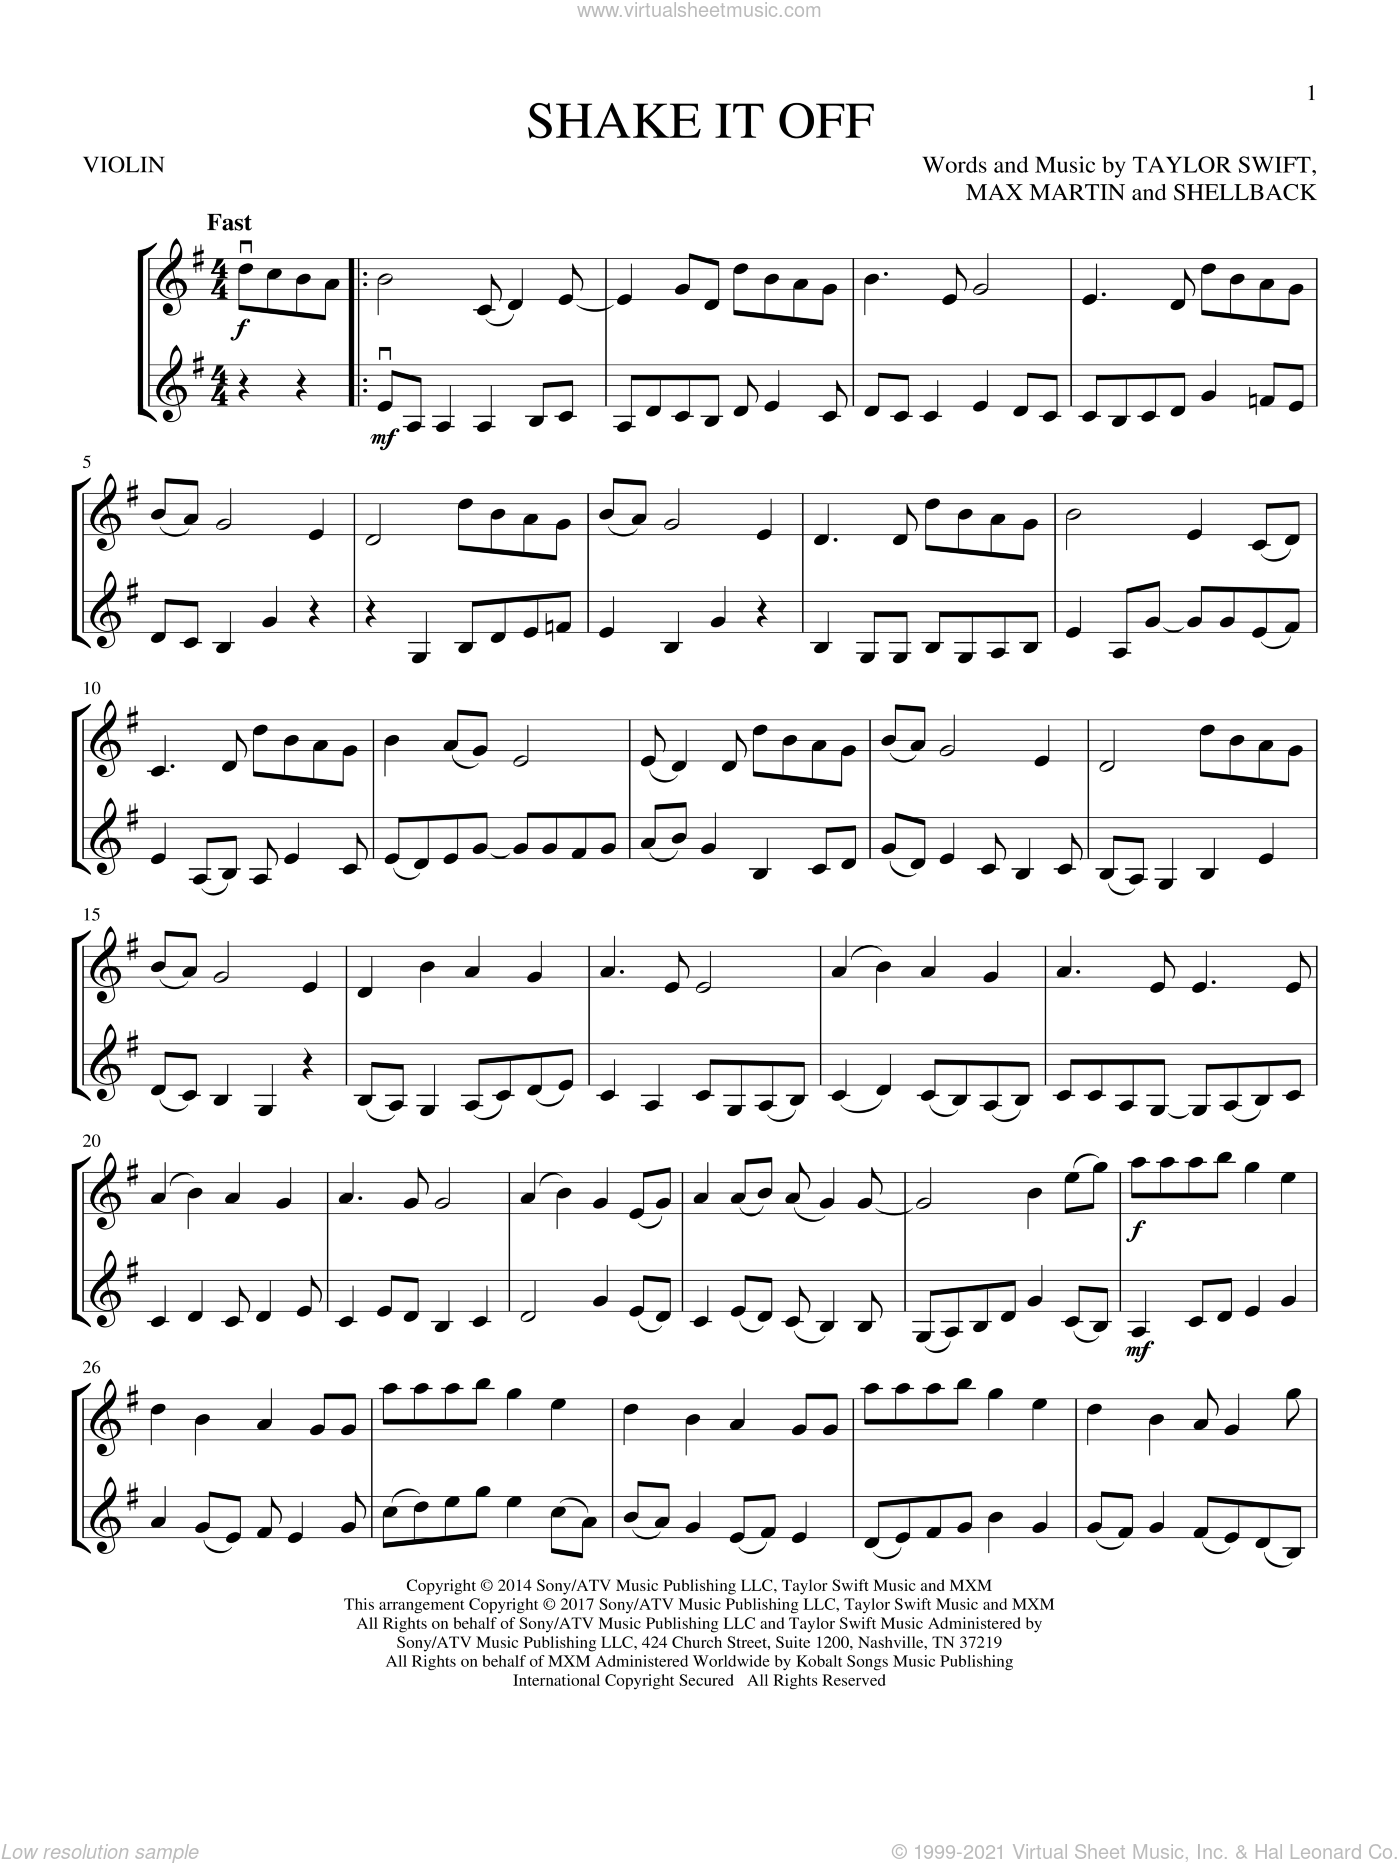 Shake It Off sheet music for two violins (duets, violin duets) by Taylor Swift, Johan Schuster, Max Martin and Shellback, intermediate skill level